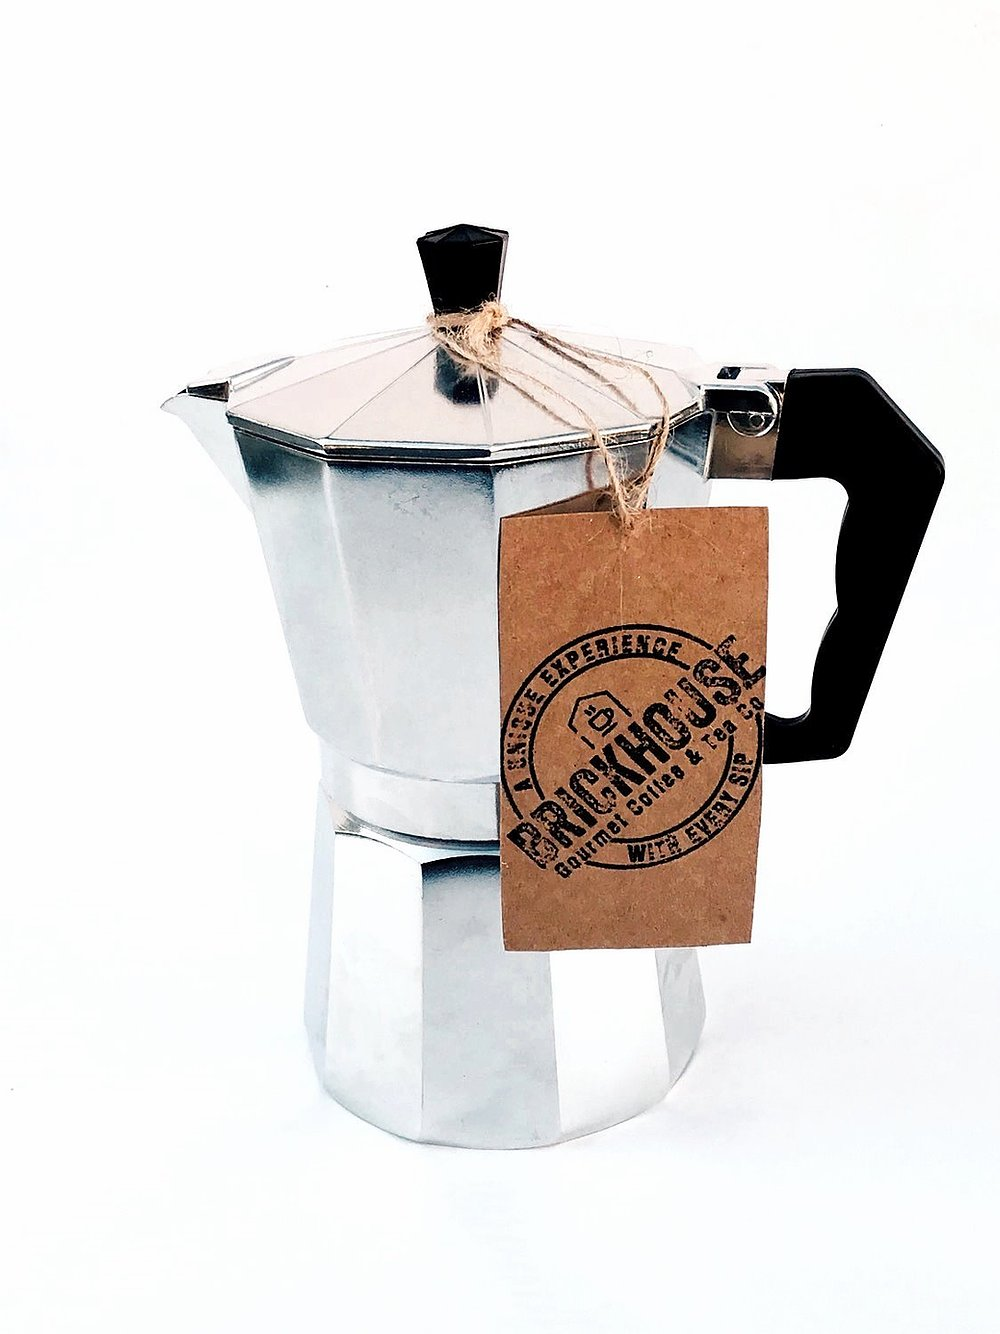 Best gifts for men: Stovetop espresso maker from Brickhouse | Small Business Holiday Gifts 2020